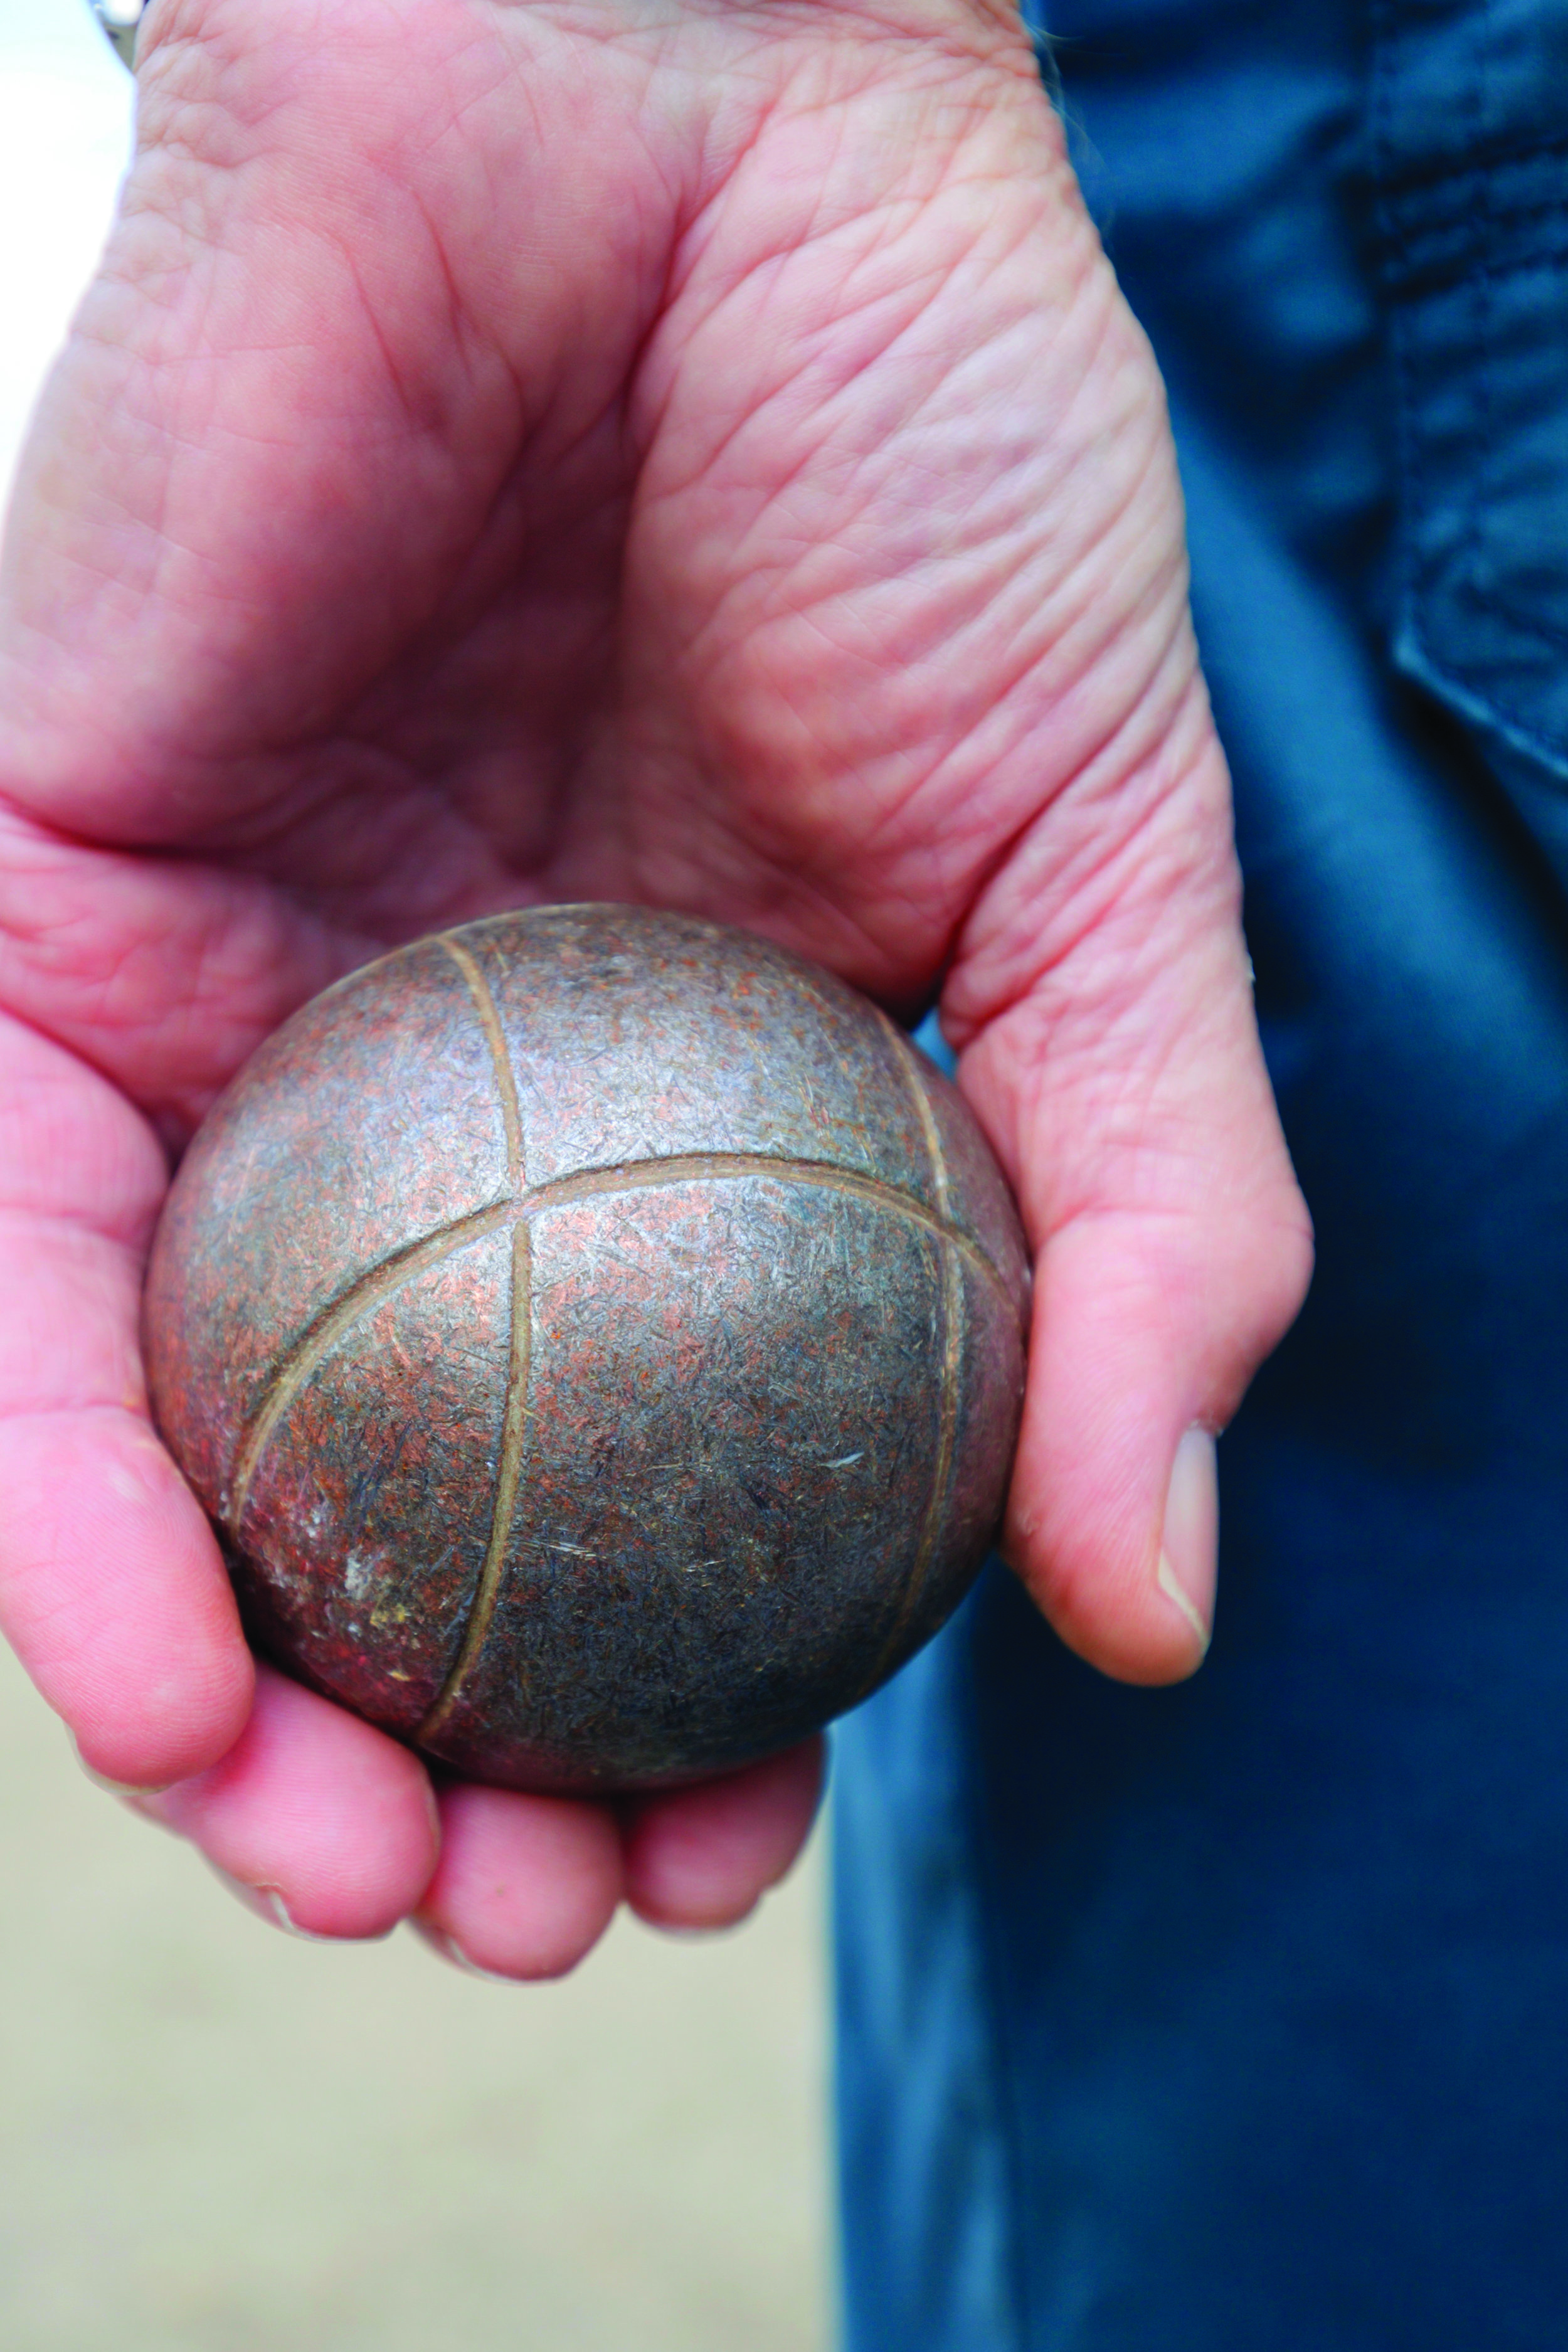 Try Petanque - Free EventEmailPh: 03 6435 1764